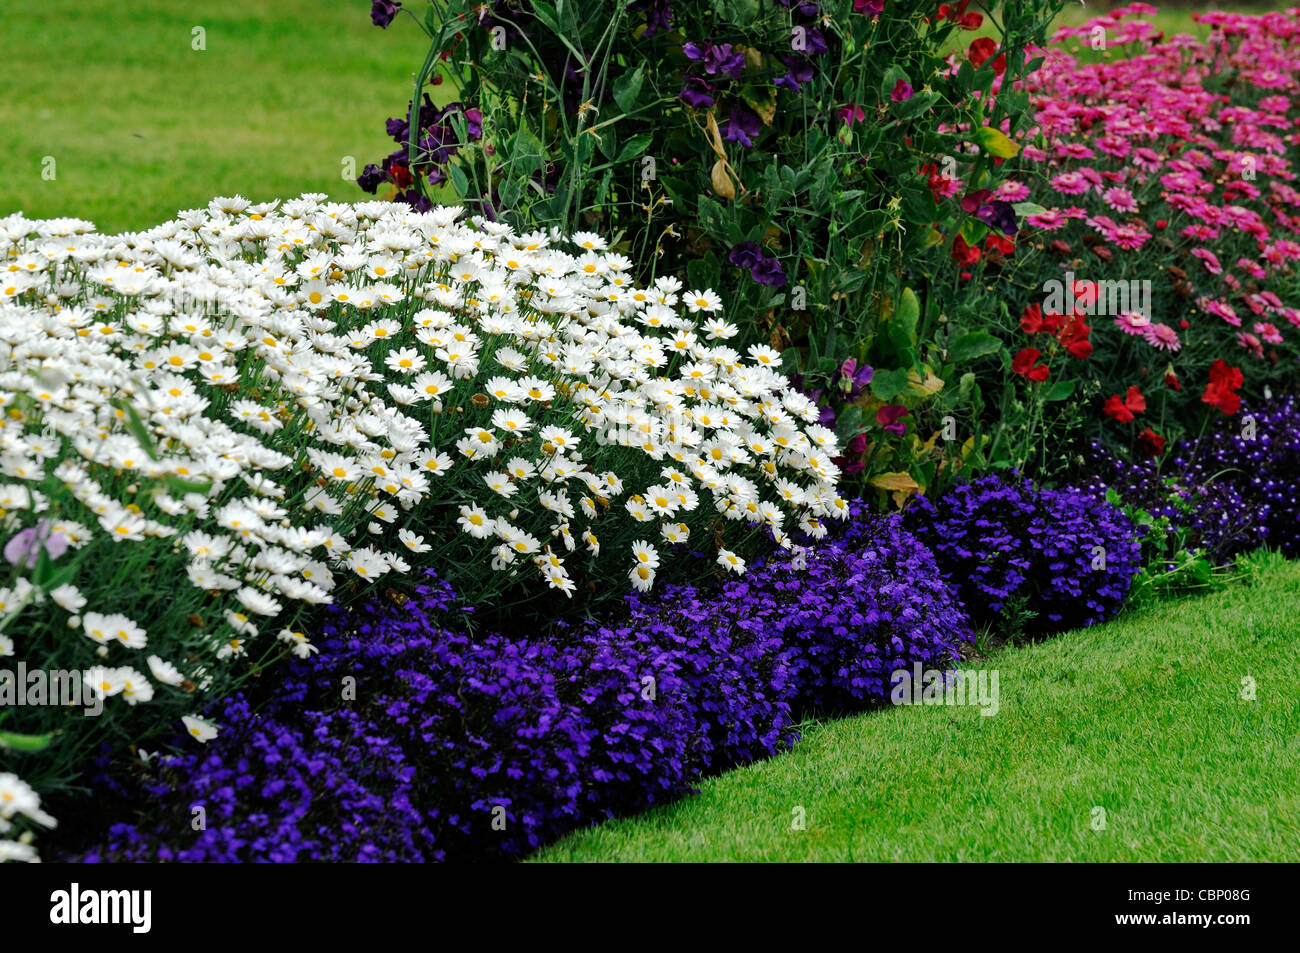 Plant Bed Summer Flowering Flowers Herbaceous Border Bed Flower